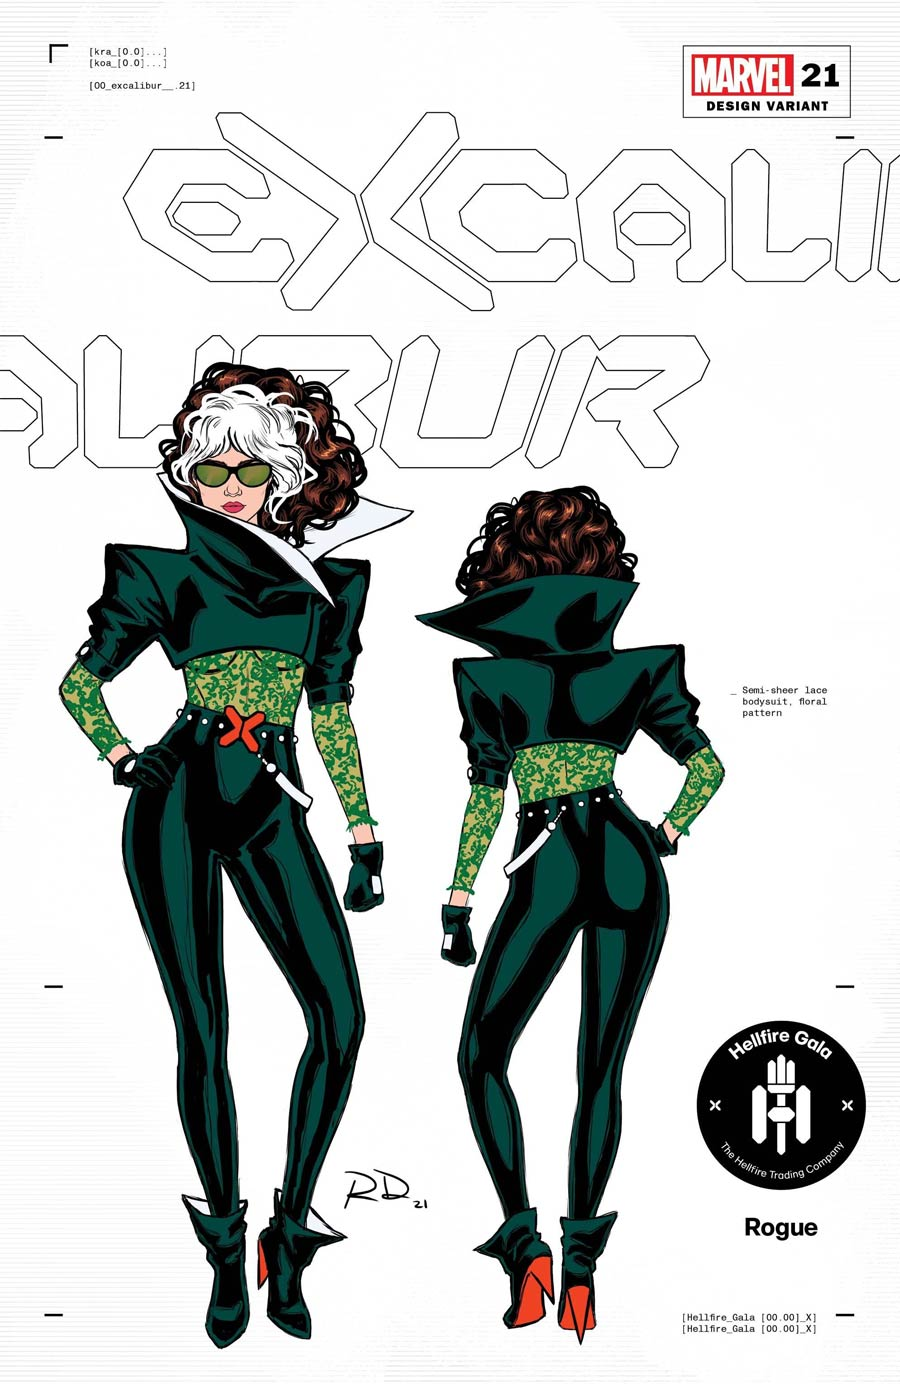 Excalibur Vol 4 #21 Cover D Incentive Russell Dauterman Rogue Character Design Variant Cover (Hellfire Gala Tie-In)